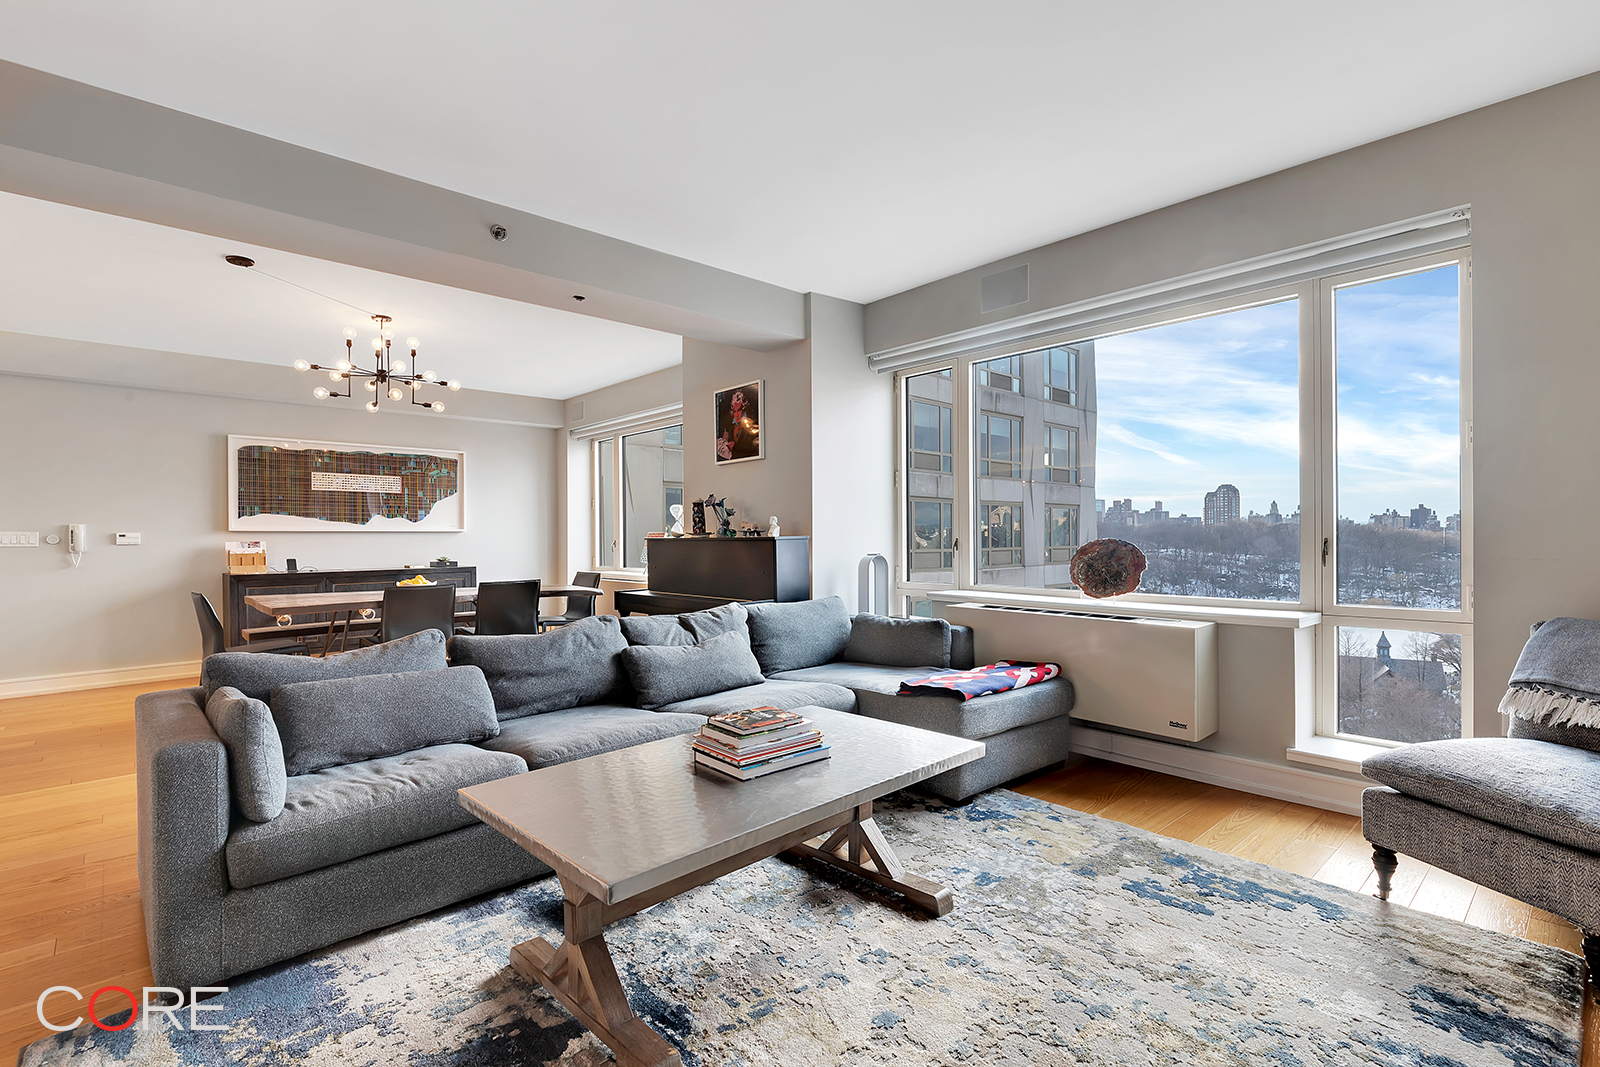 One of the largest layouts available at One Museum Mile, this Central Park-facing three or four-bedroom condo offers the best in design, flexibility, space, view and customization. With oversized windows overlooking the most beautiful corner of Central Park and designed by Robert A.M. Stern Architects and Andre Kikoski, this home offers a gracious layout including a kitchen with top-of-the-line Bosch and Thermador appliances and granite countertops, a master suite with a huge walk-in closet and an en-suite bathroom, and one of the most expansive great room configurations in the building. The closets have been completely customized and the apartment comes wired for sound with built-in Sonos speakers.  The building offers residents both timeless architecture and generous lifestyle amenities including a landscaped roof deck with outdoor heated pool, residents' lounge with fireplace, fitness center with terrace, children's playroom with a window wall to fitness center, game room, formal dining room facing Central Park with a fully equipped catering kitchen, media lounge, card room, rooftop lounge facing Central Park, bicycle storage and cold storage. A full-time concierge, peak time door person coverage, and an on-site resident manager provide residents with discreet and exceptional service. Residents are greeted in the main lobby by a 44-foot long alabaster-inspired art glass wall by Andre Kikoski and Weil Studio. Parking in the on-site garage is available by a separate agreement.